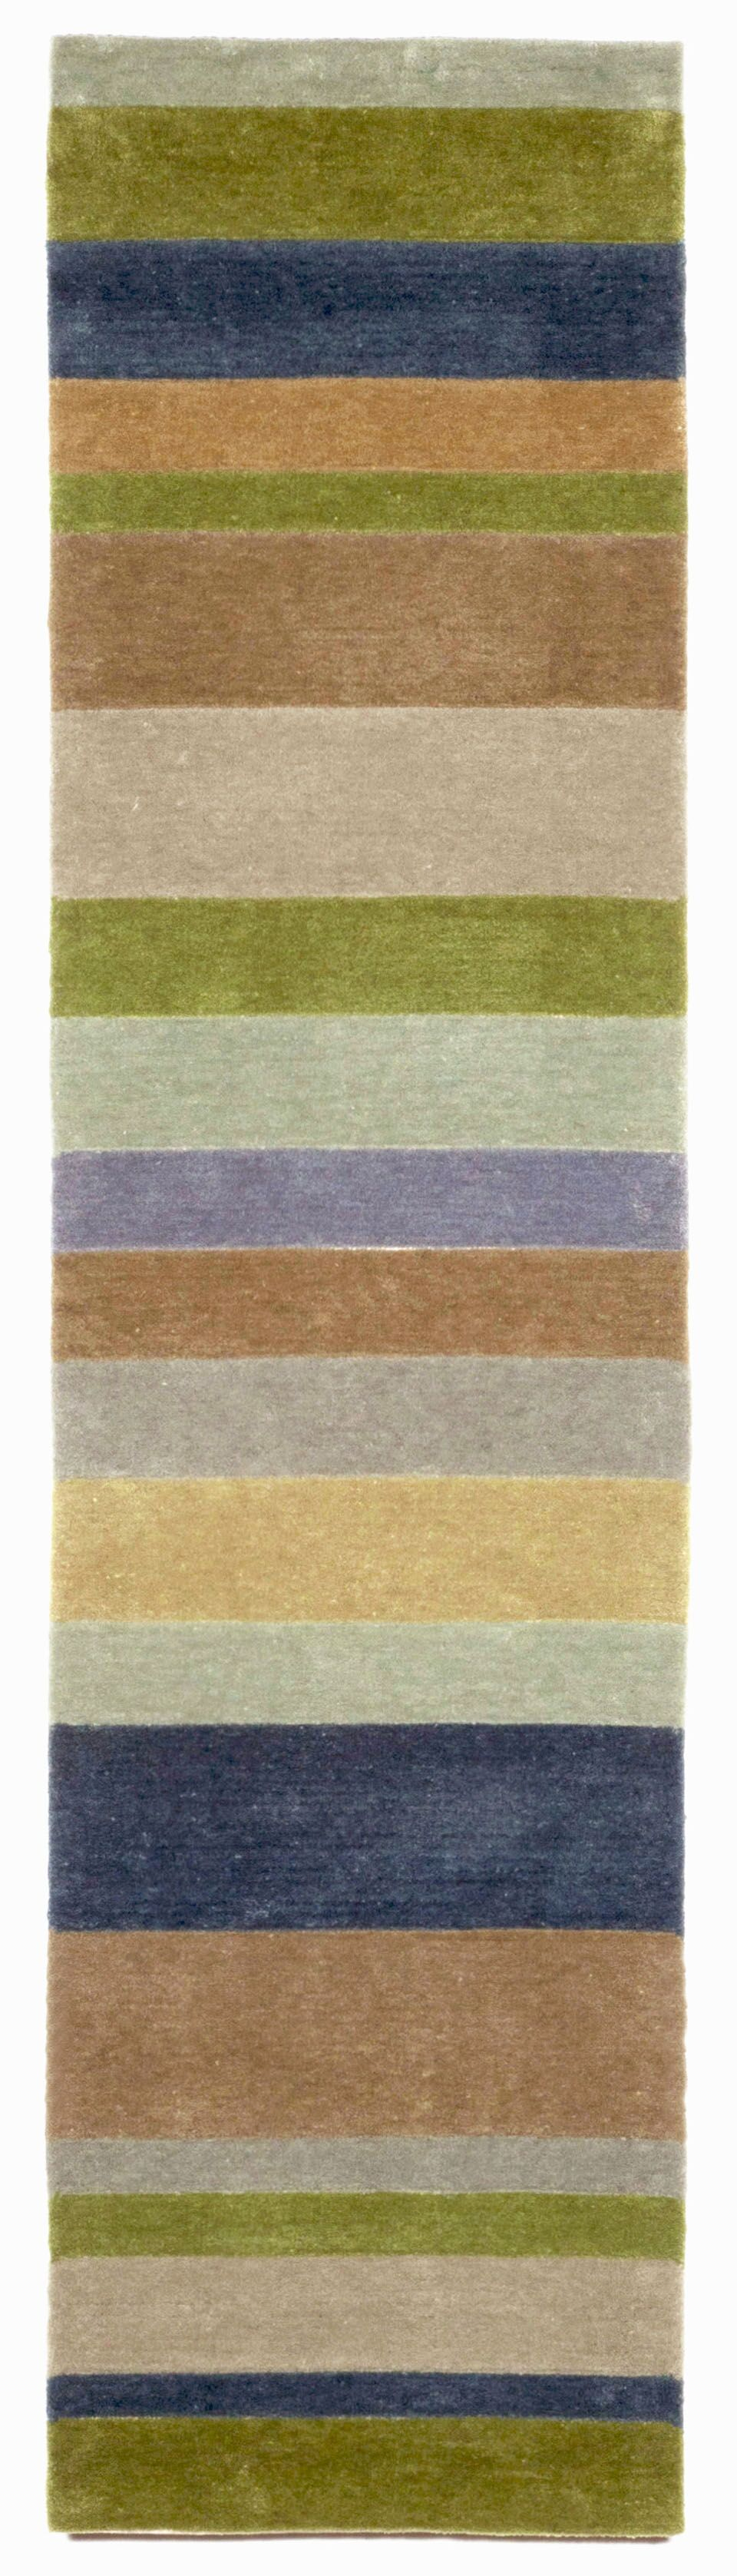 Lilly Stripes Area Rug Rug Size: Runner 2' x 8'